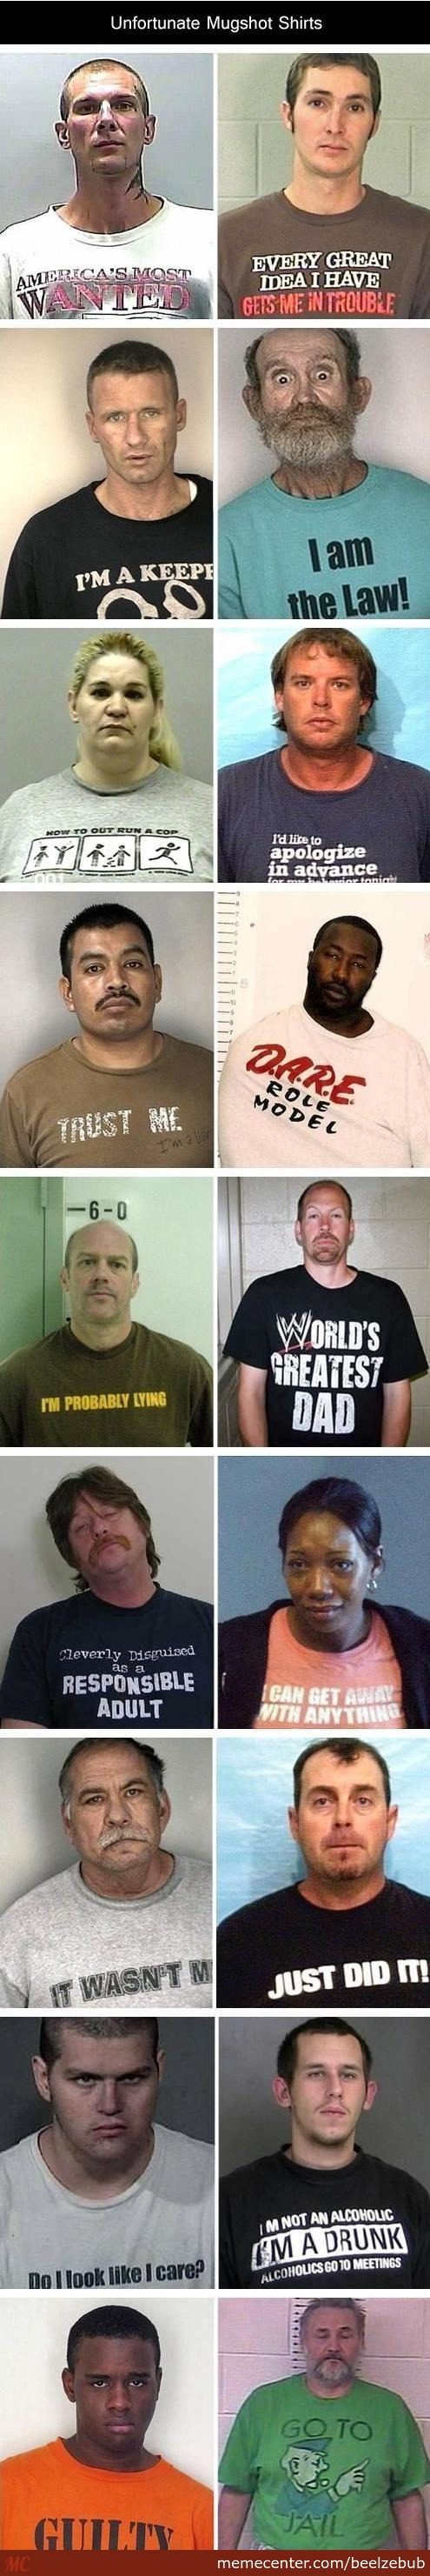 Worst T-Shirts To Wear While Getting A Mugshot